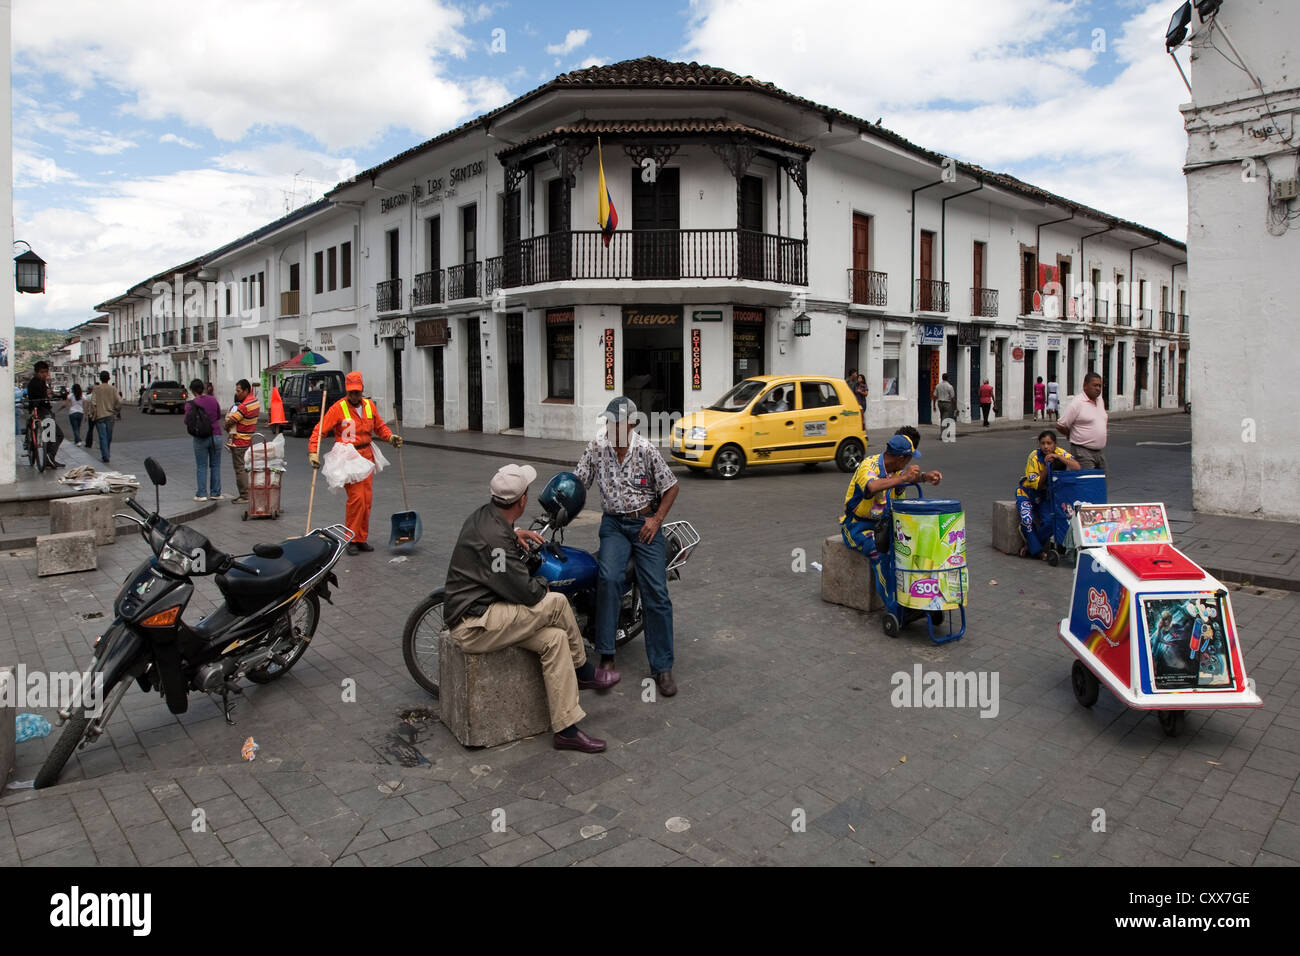 Crossroad in central historic center Popayan Colombia - Stock Image